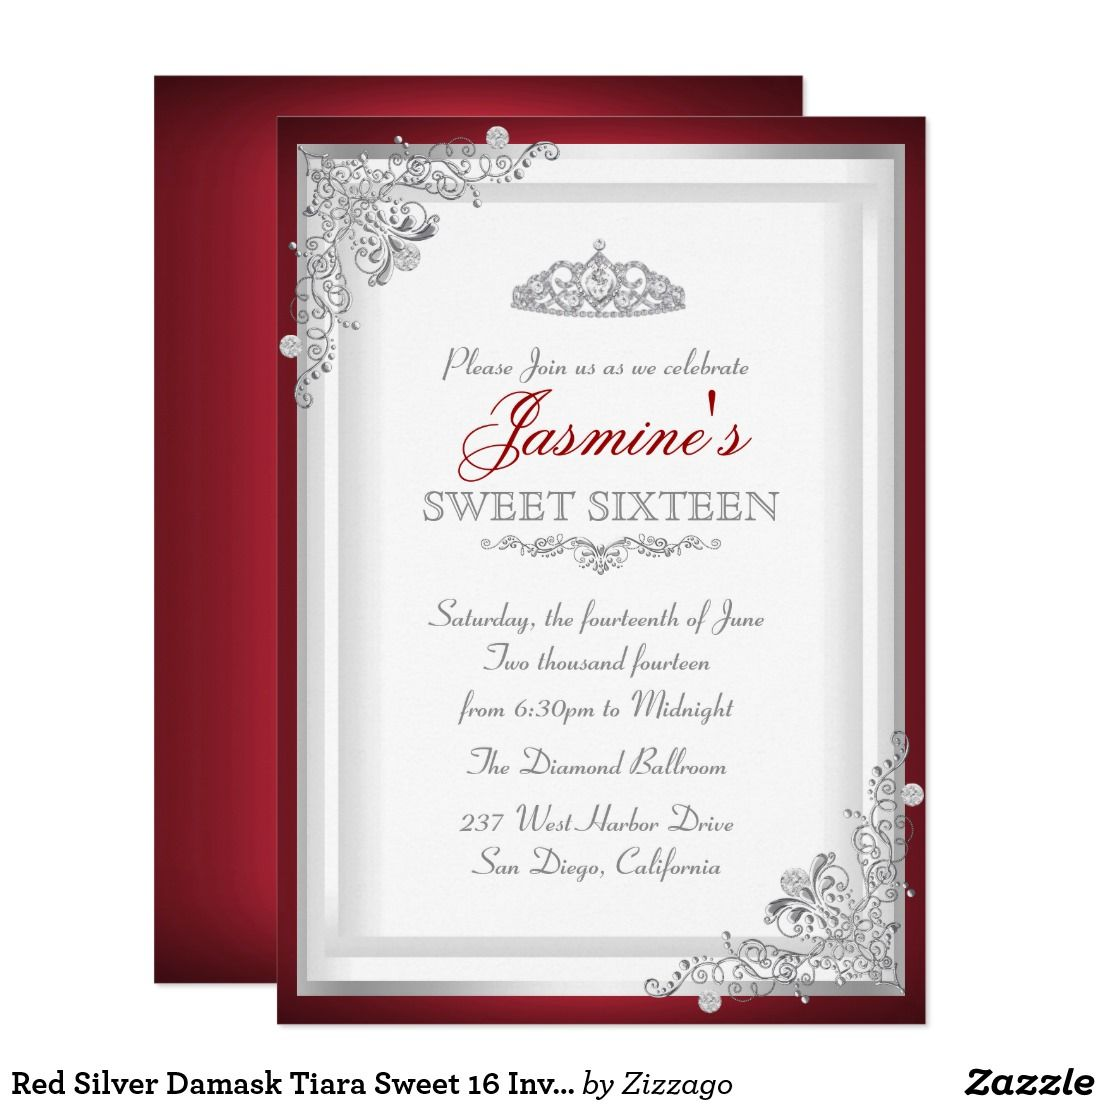 Red Silver Damask Tiara Sweet 16 Invitation | Sweet 16 invitations ...